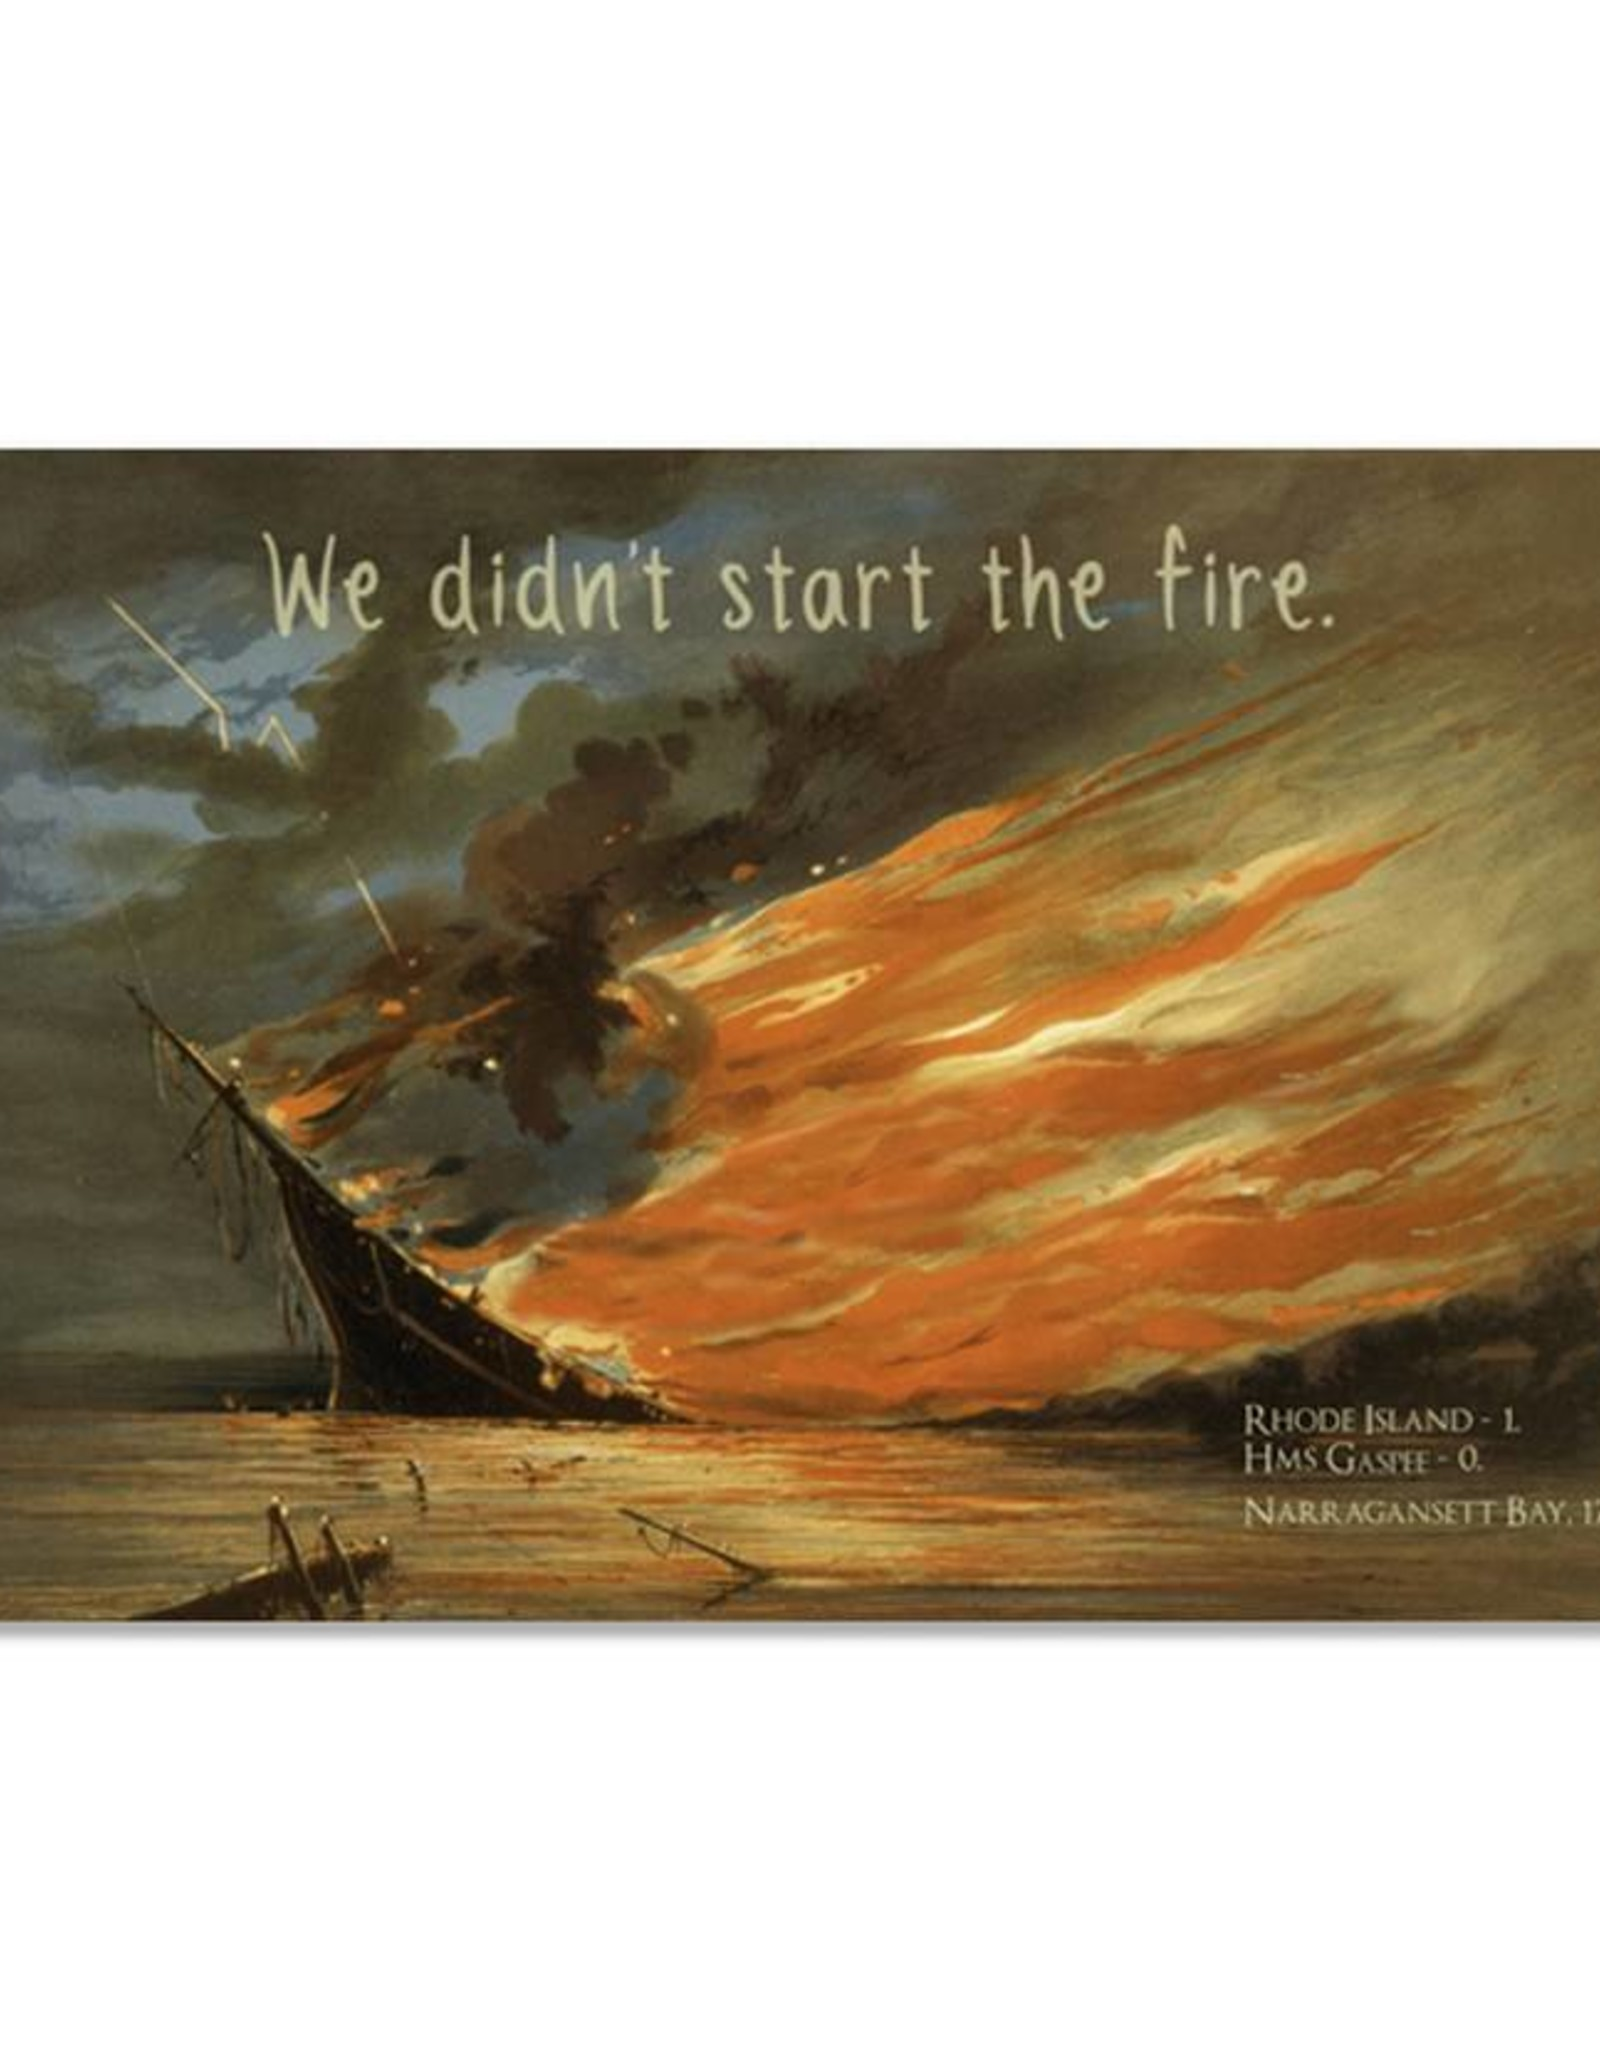 Burning of the Gaspee Print